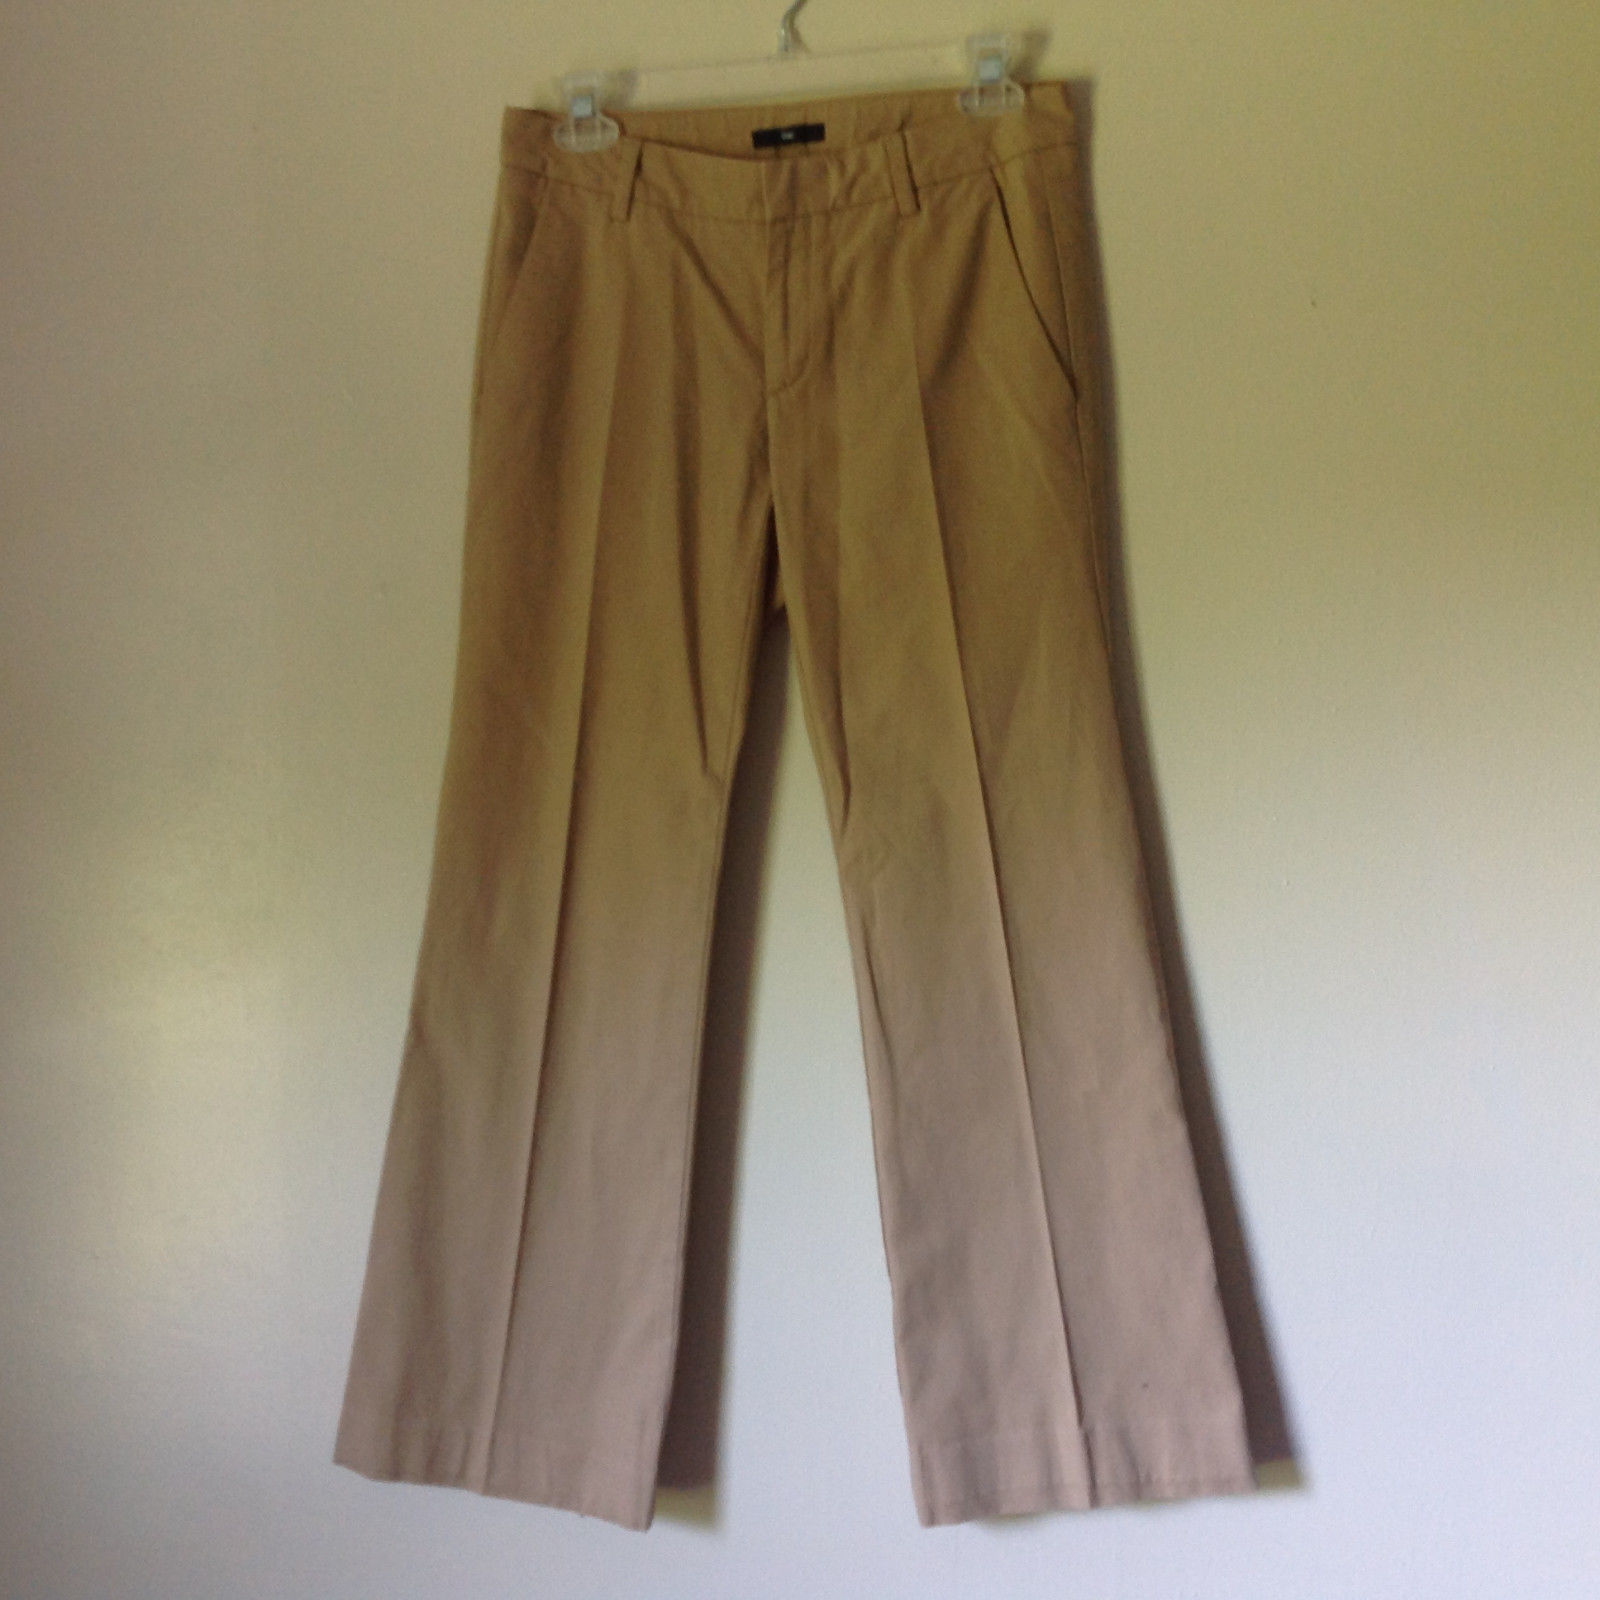 Light Brown Casual Pants by GAP Size 00 Regular Front Back Pockets Belt Loops